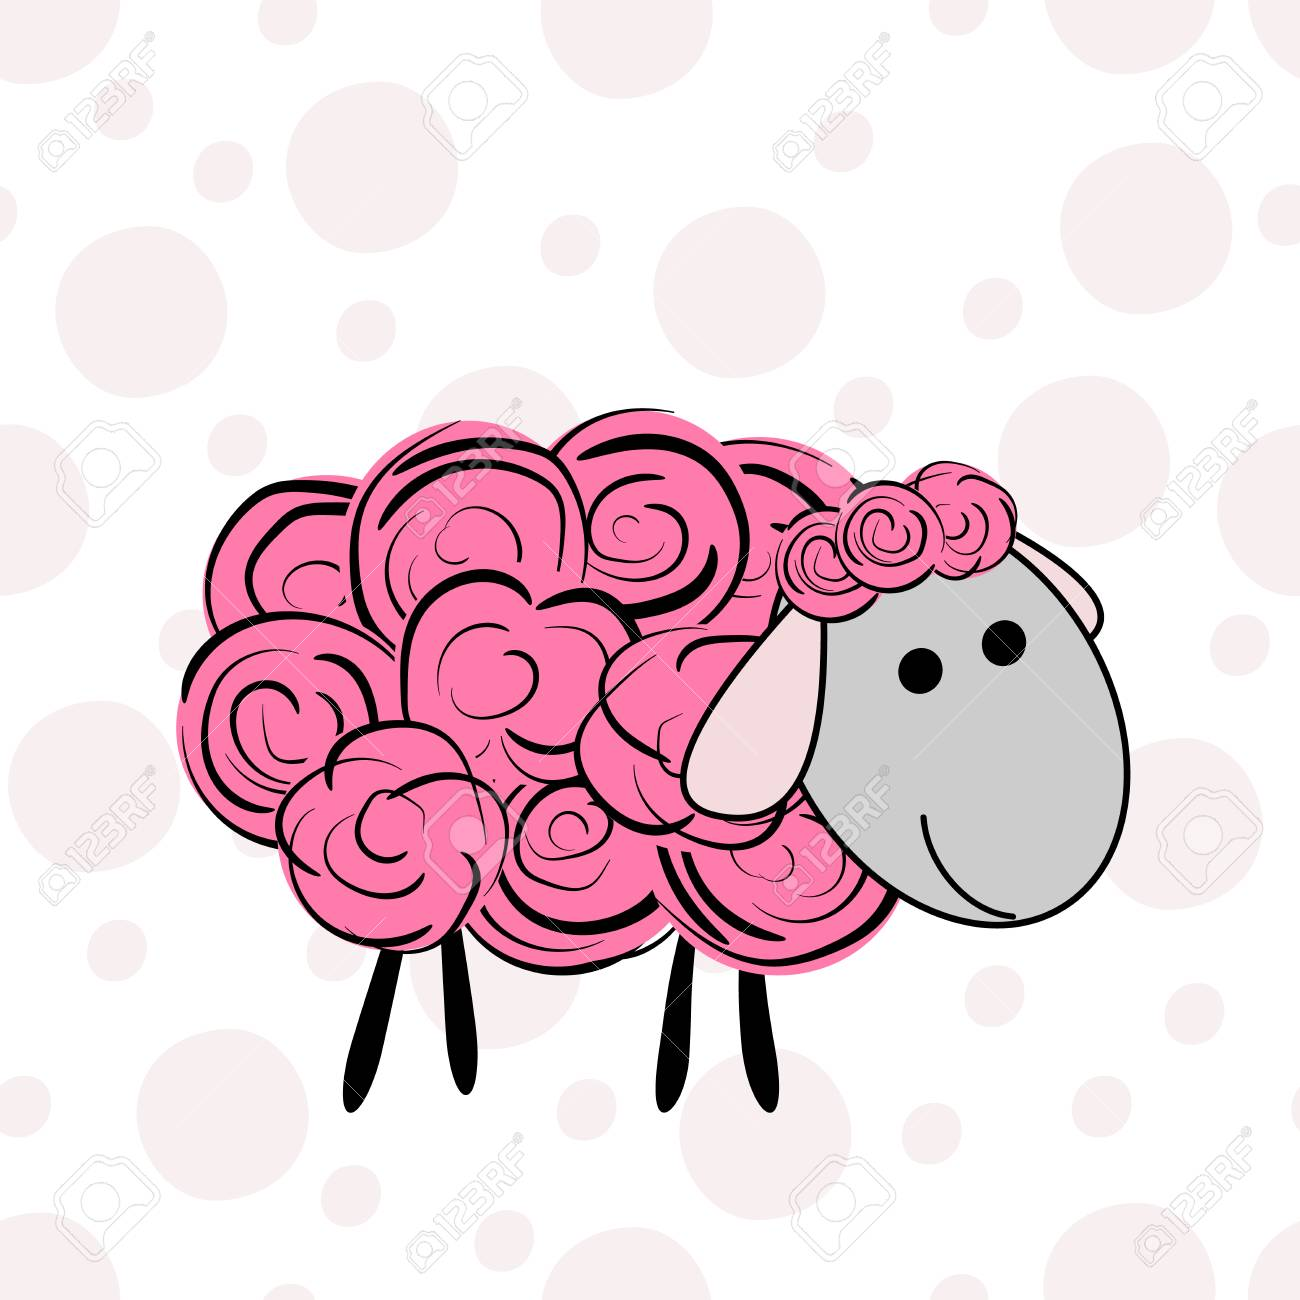 Vector Illustration Of A Cartoon Sheep Prints For Textiles